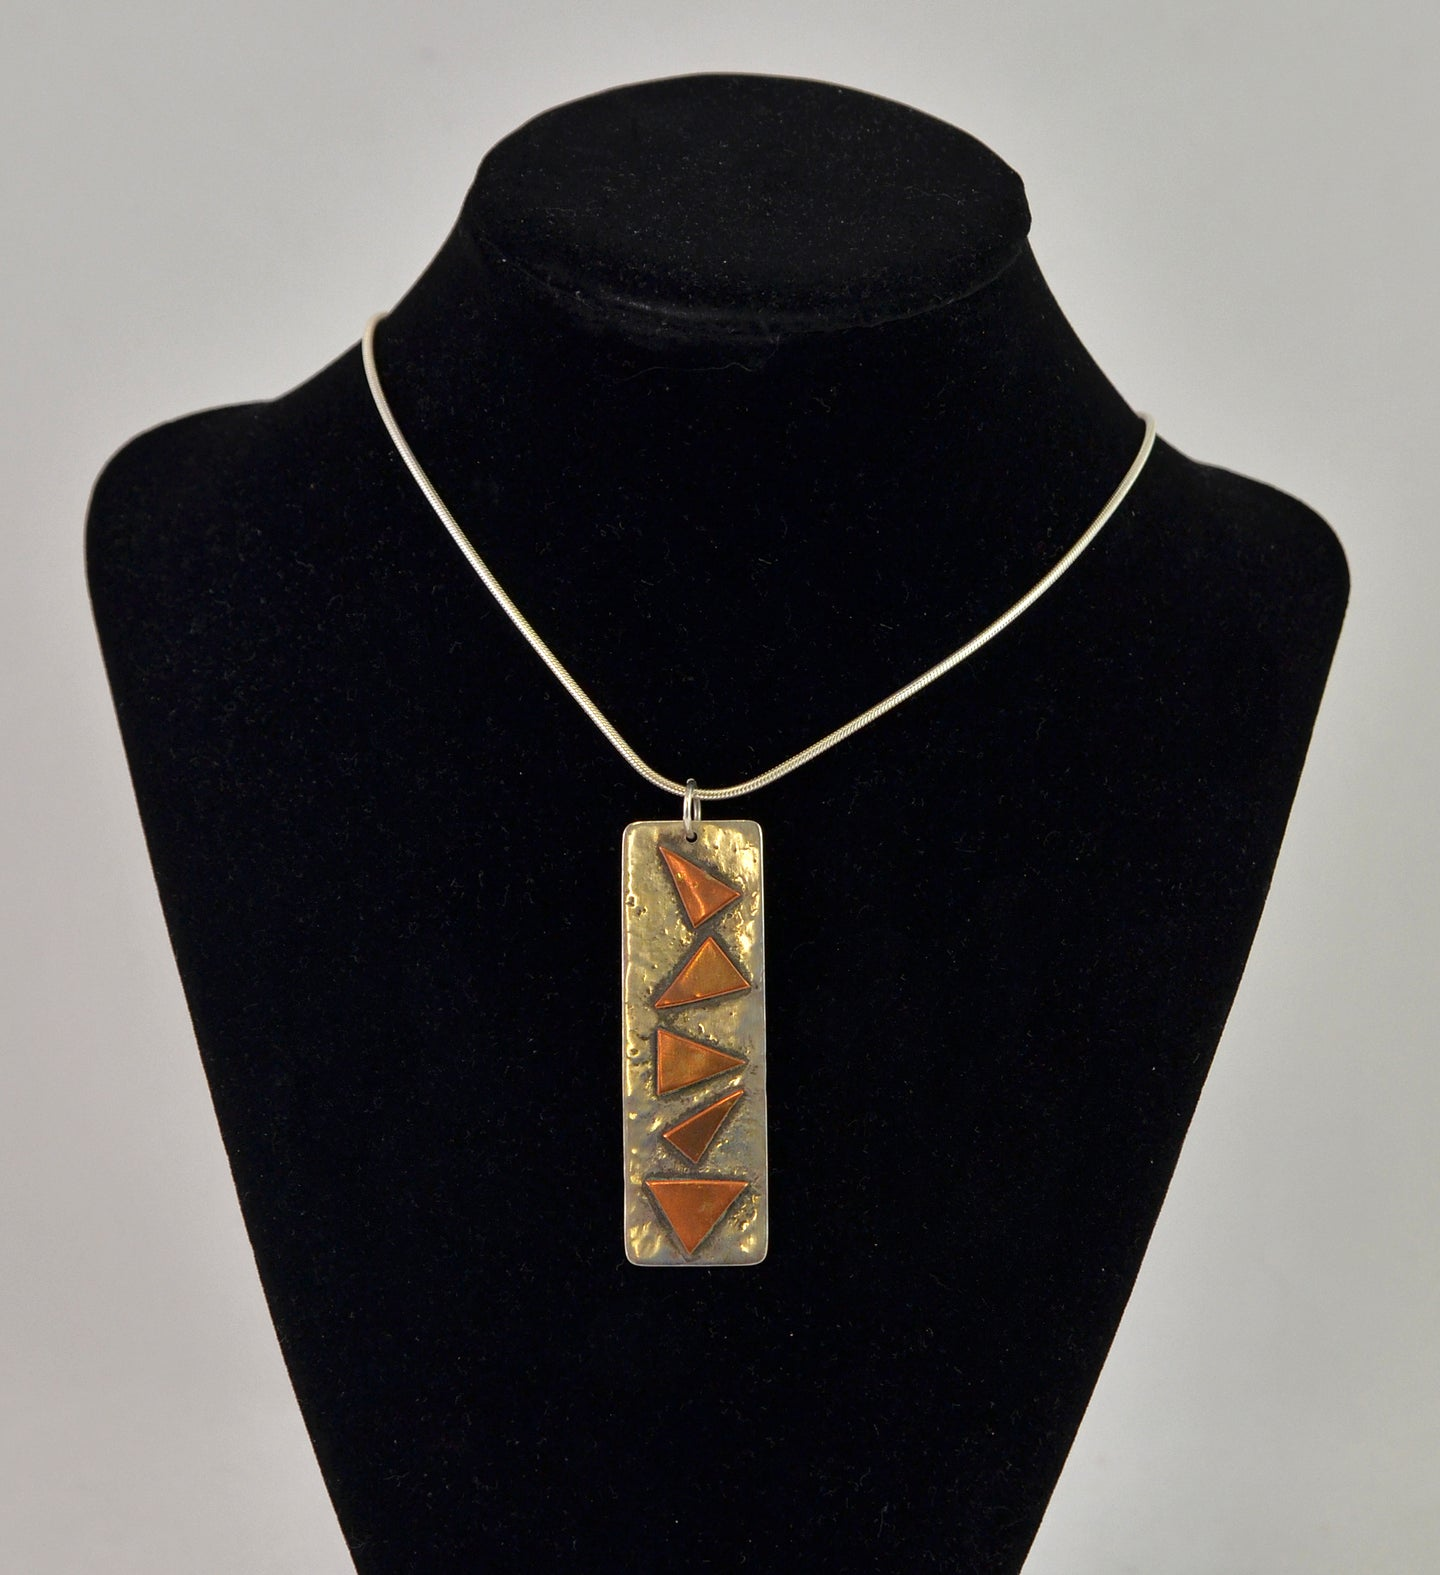 Silver and Copper Train Necklace by Christina Chomel